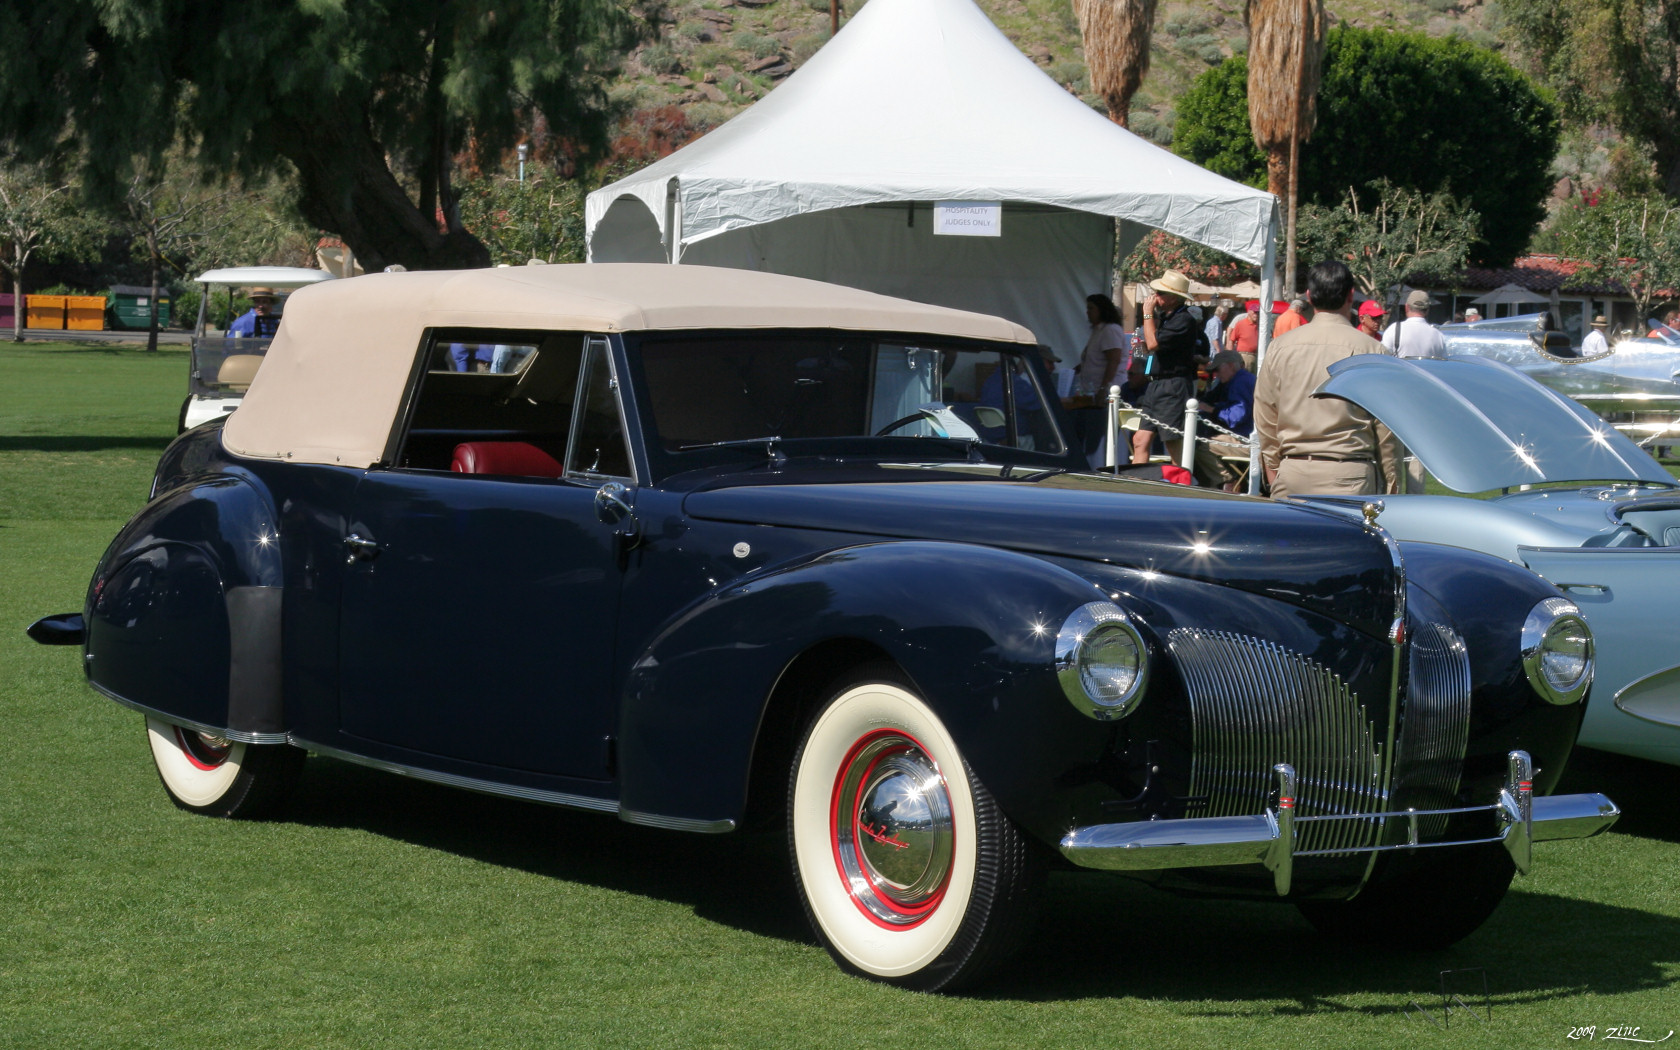 1940 lincoln zephyr continental cabriolet images pictures and videos. Black Bedroom Furniture Sets. Home Design Ideas